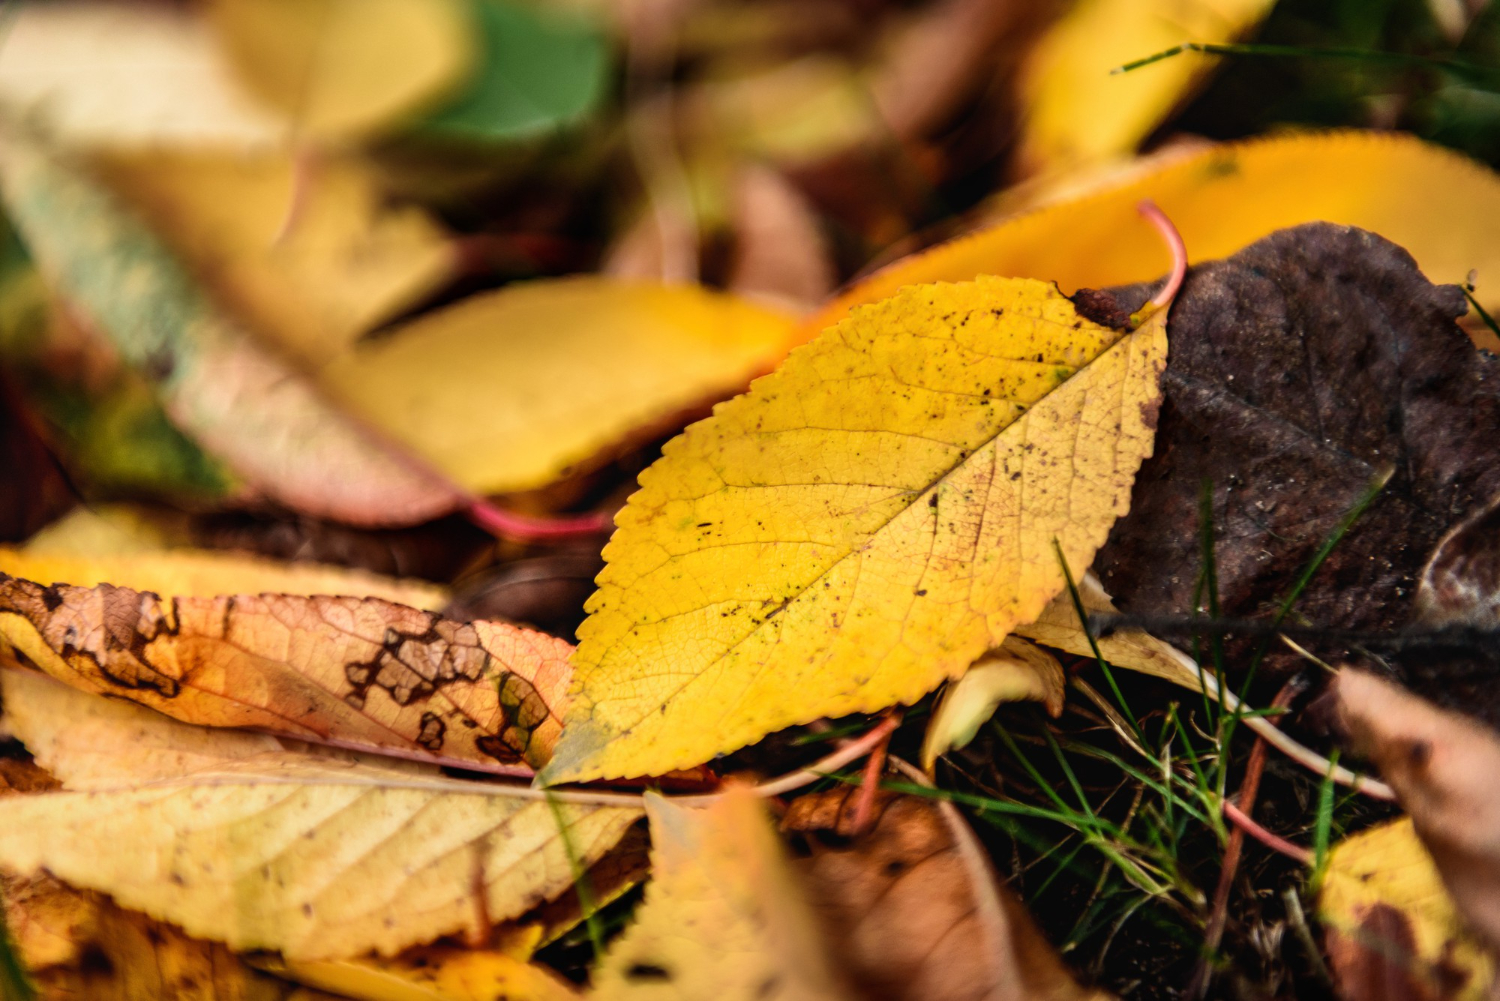 7 tips for sustainable fall yard clean-up